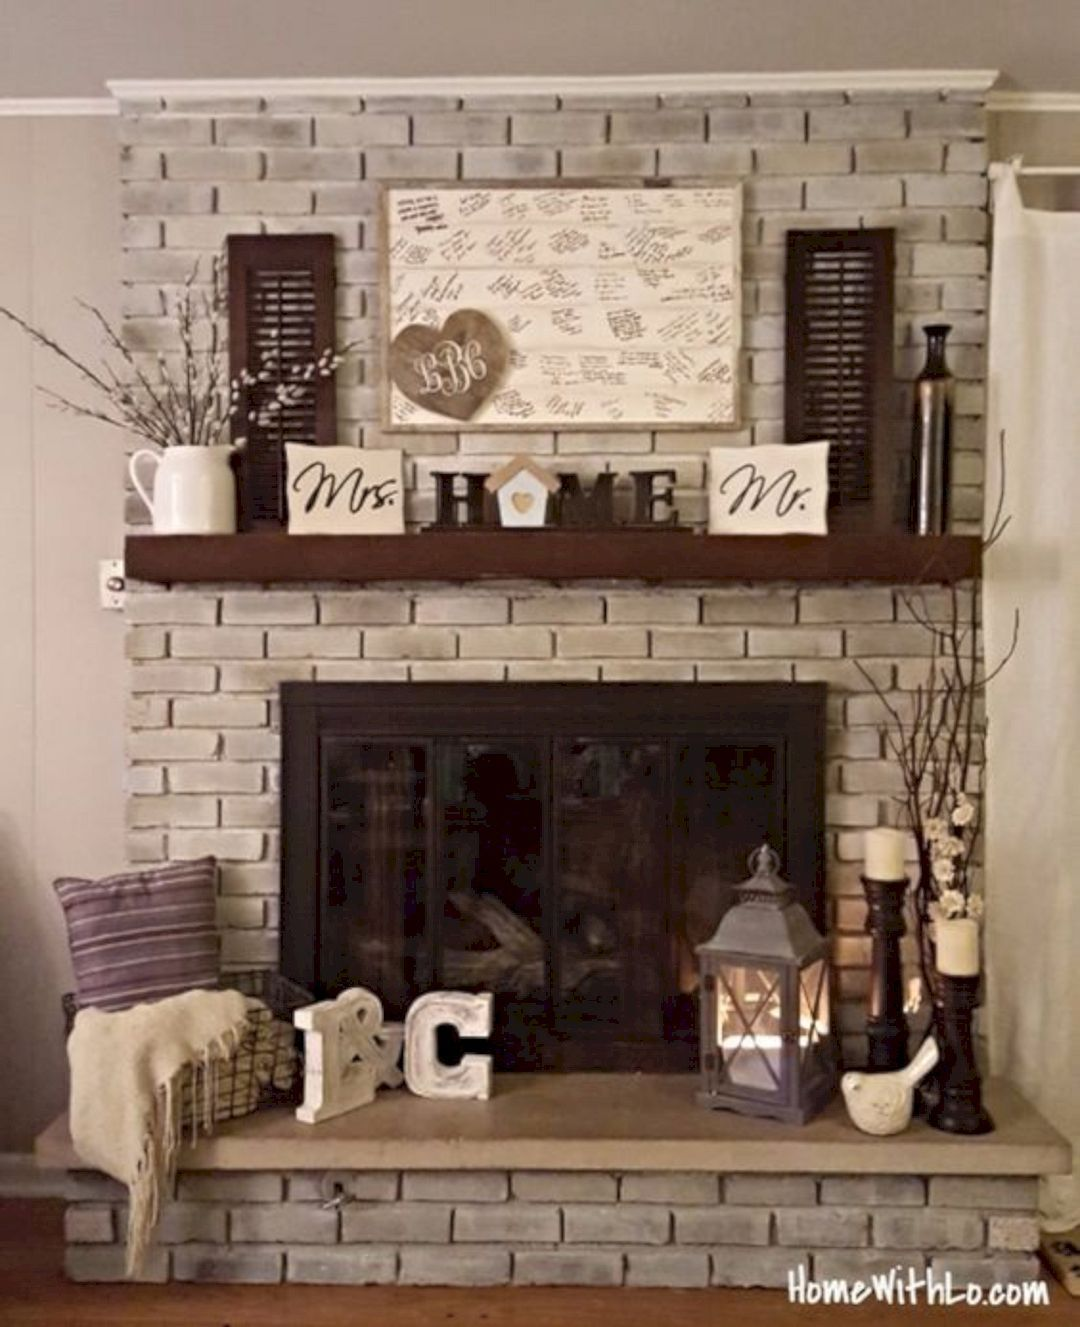 7 Awesome Small Living Room Ideas With Fireplace Fall Fireplace Decor Home Decor Fireplace Decor